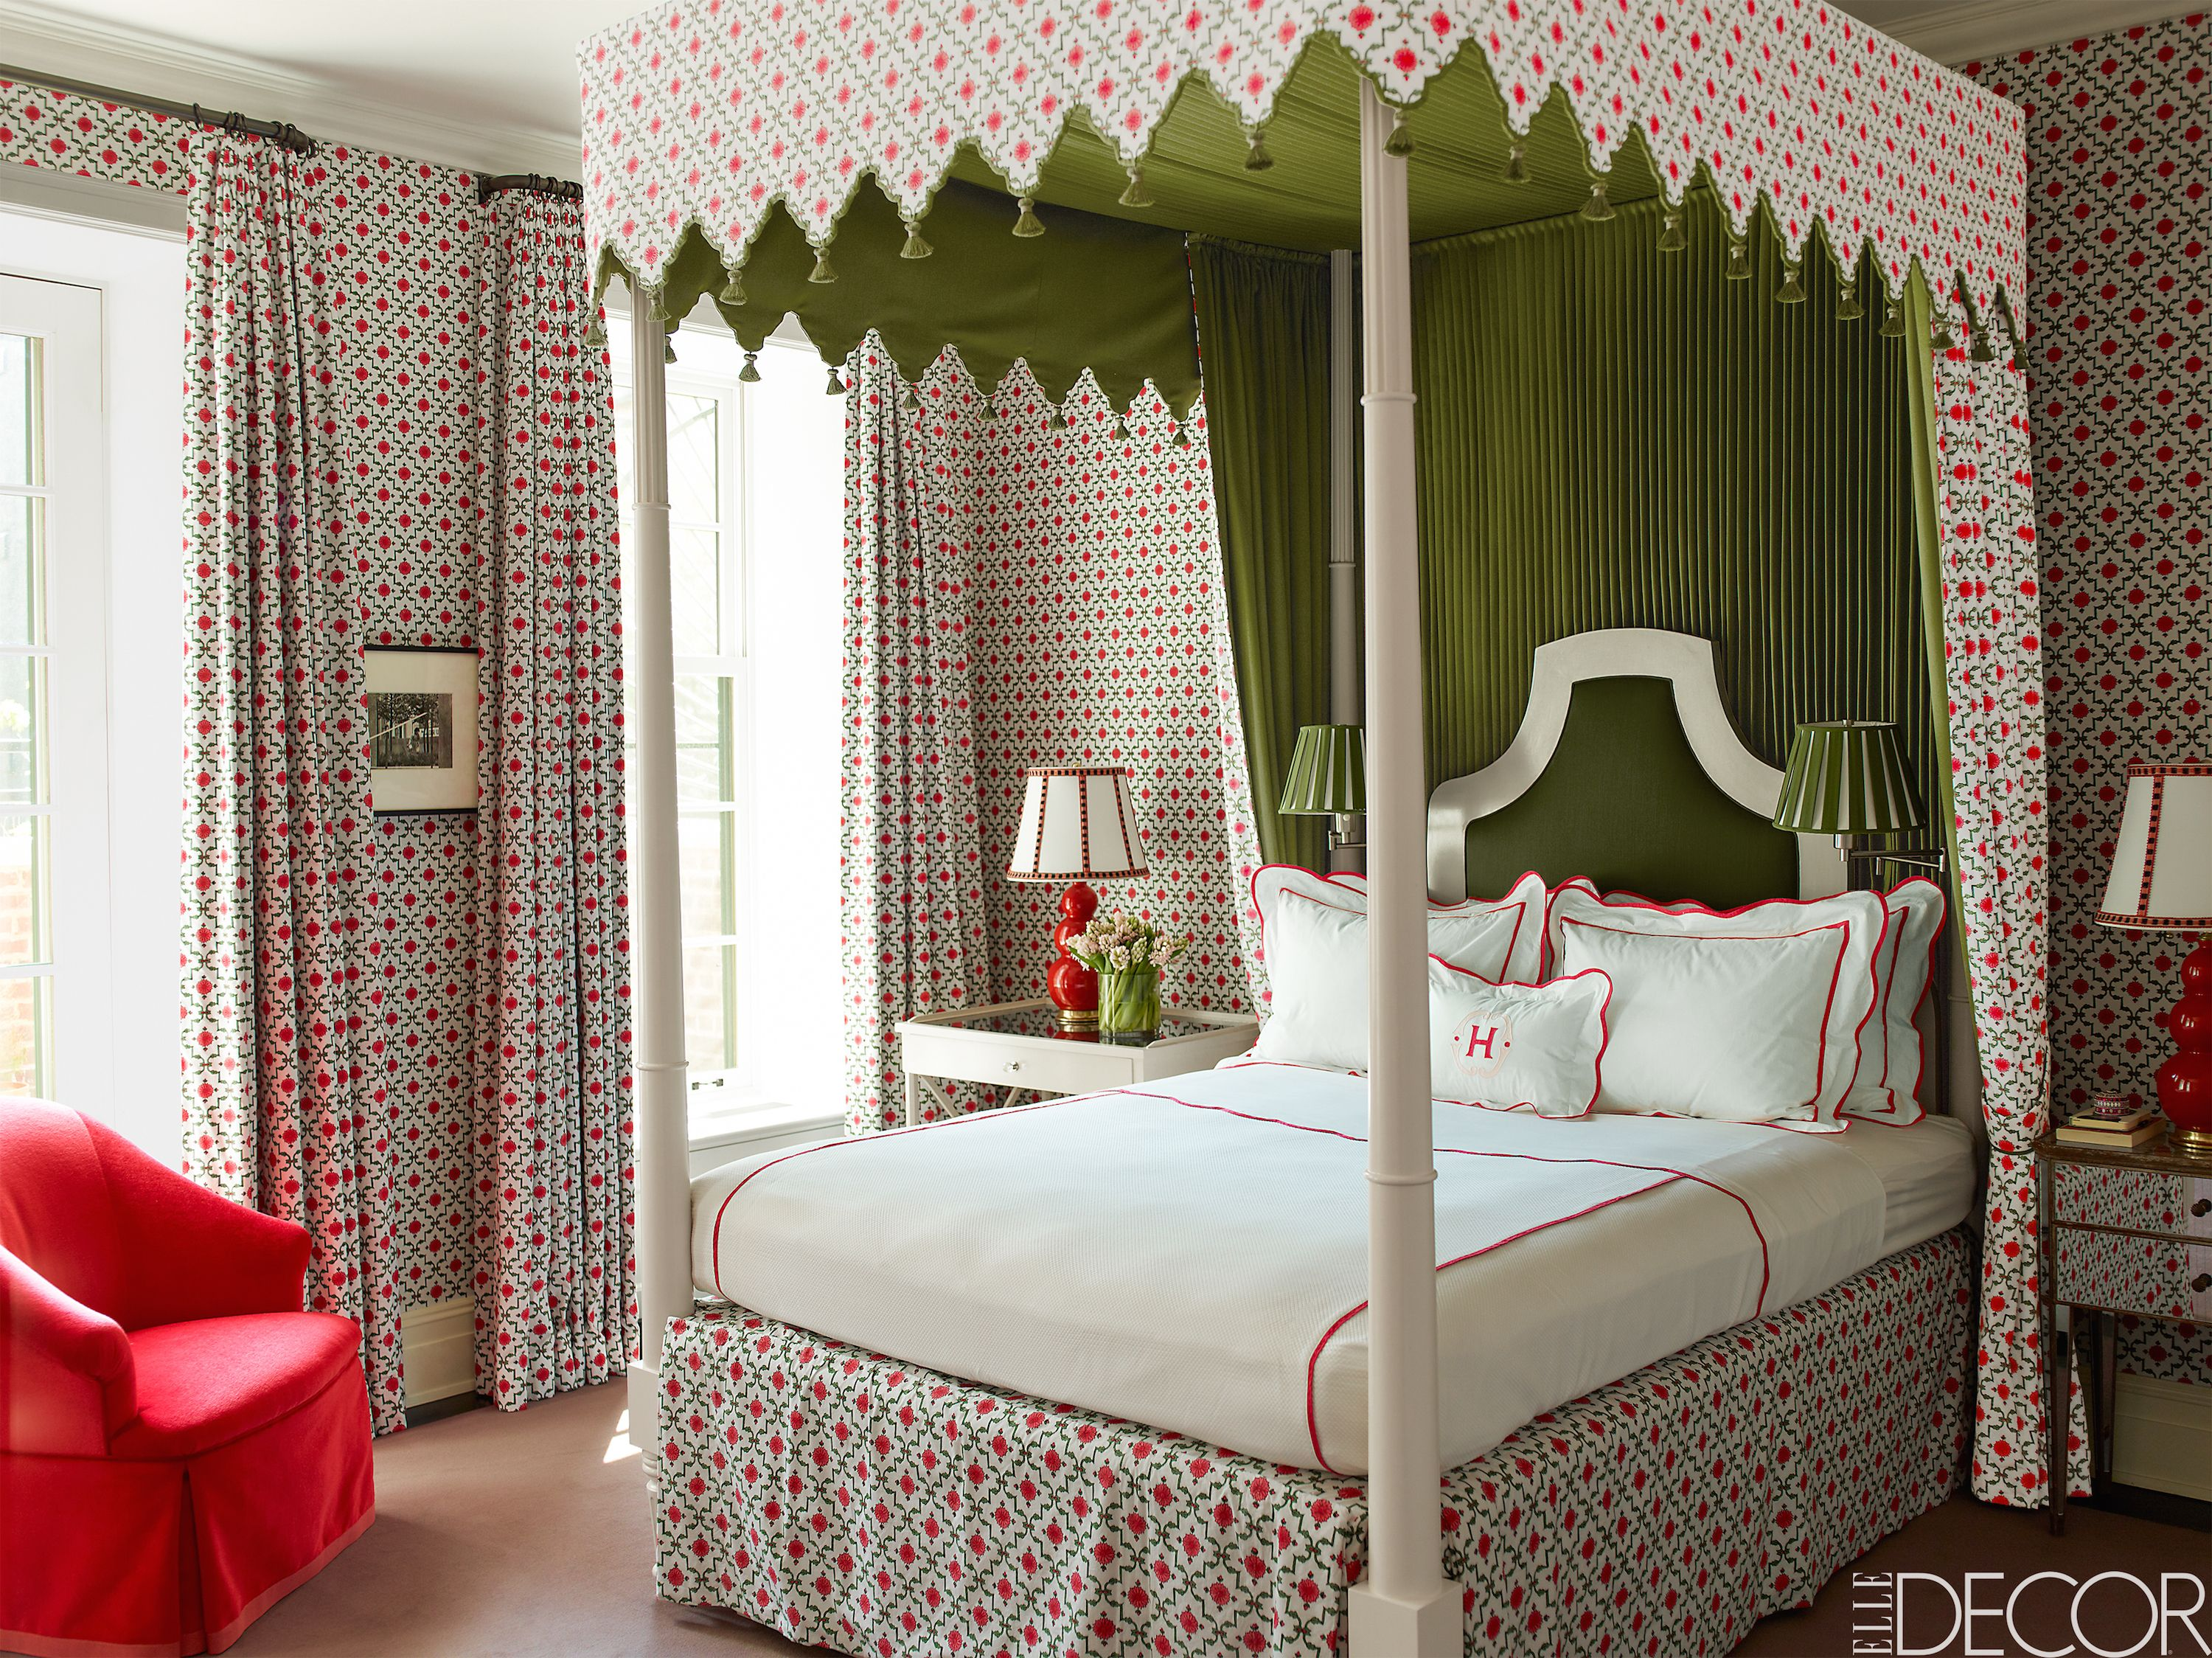 Room Design For Girls 15 Creative Girls Room Ideas How To Decorate A Girl S Bedroom